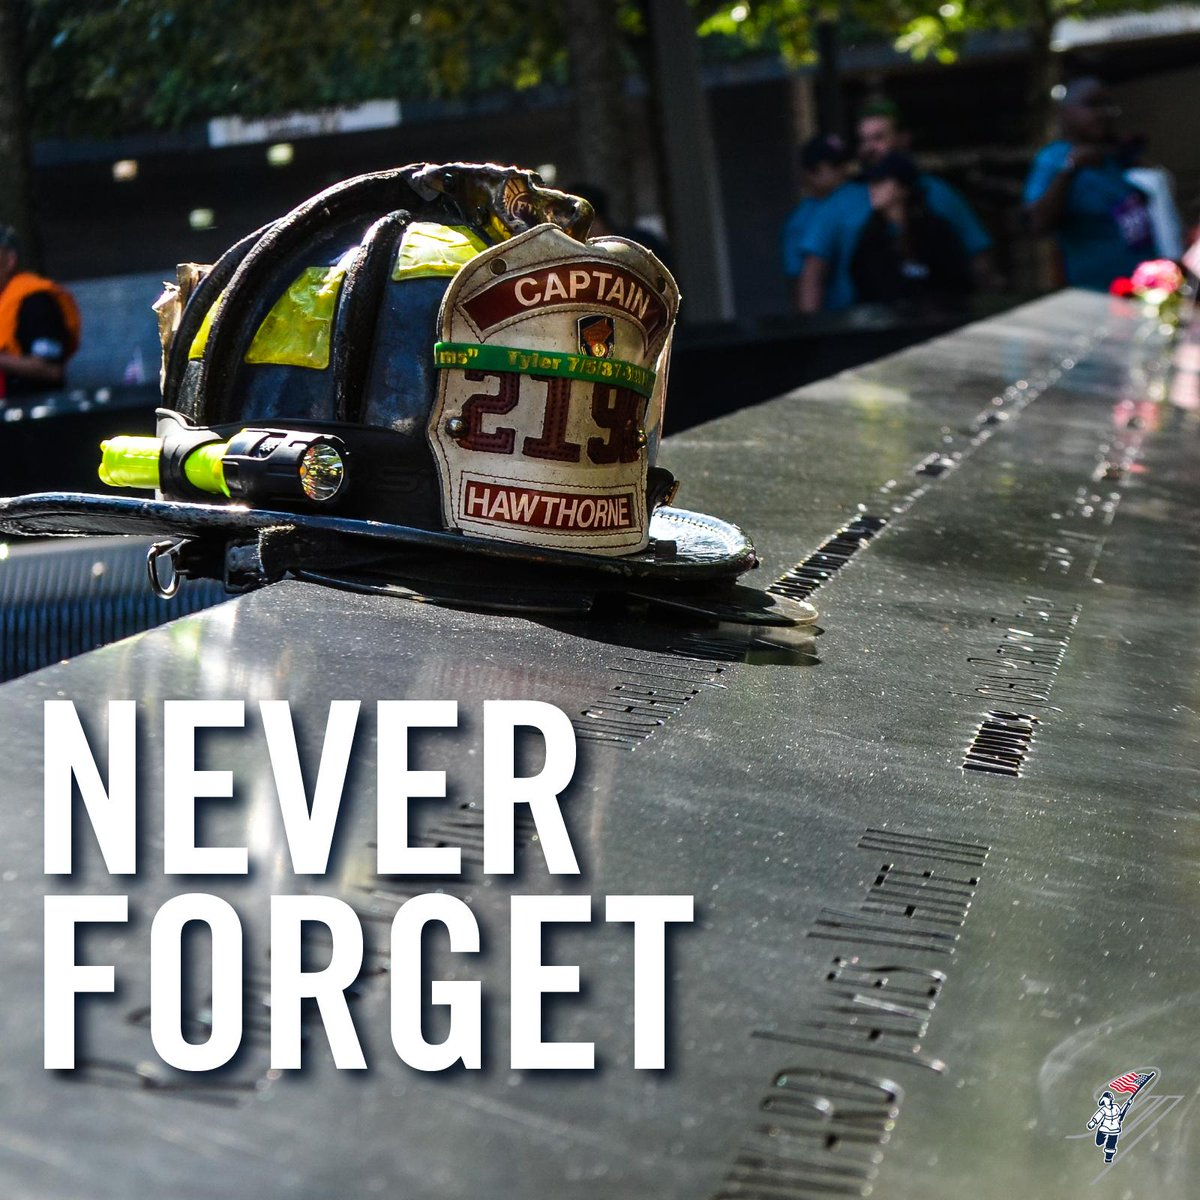 To the fallen heroes - our nation's protectors, those who continue to keep us safe and, of course, our brother Stephen. Today, the 18th anniversary of 9/11, we remember your bravery. Your sacrifices will never be forgotten. <br>http://pic.twitter.com/dxk3NN08u7